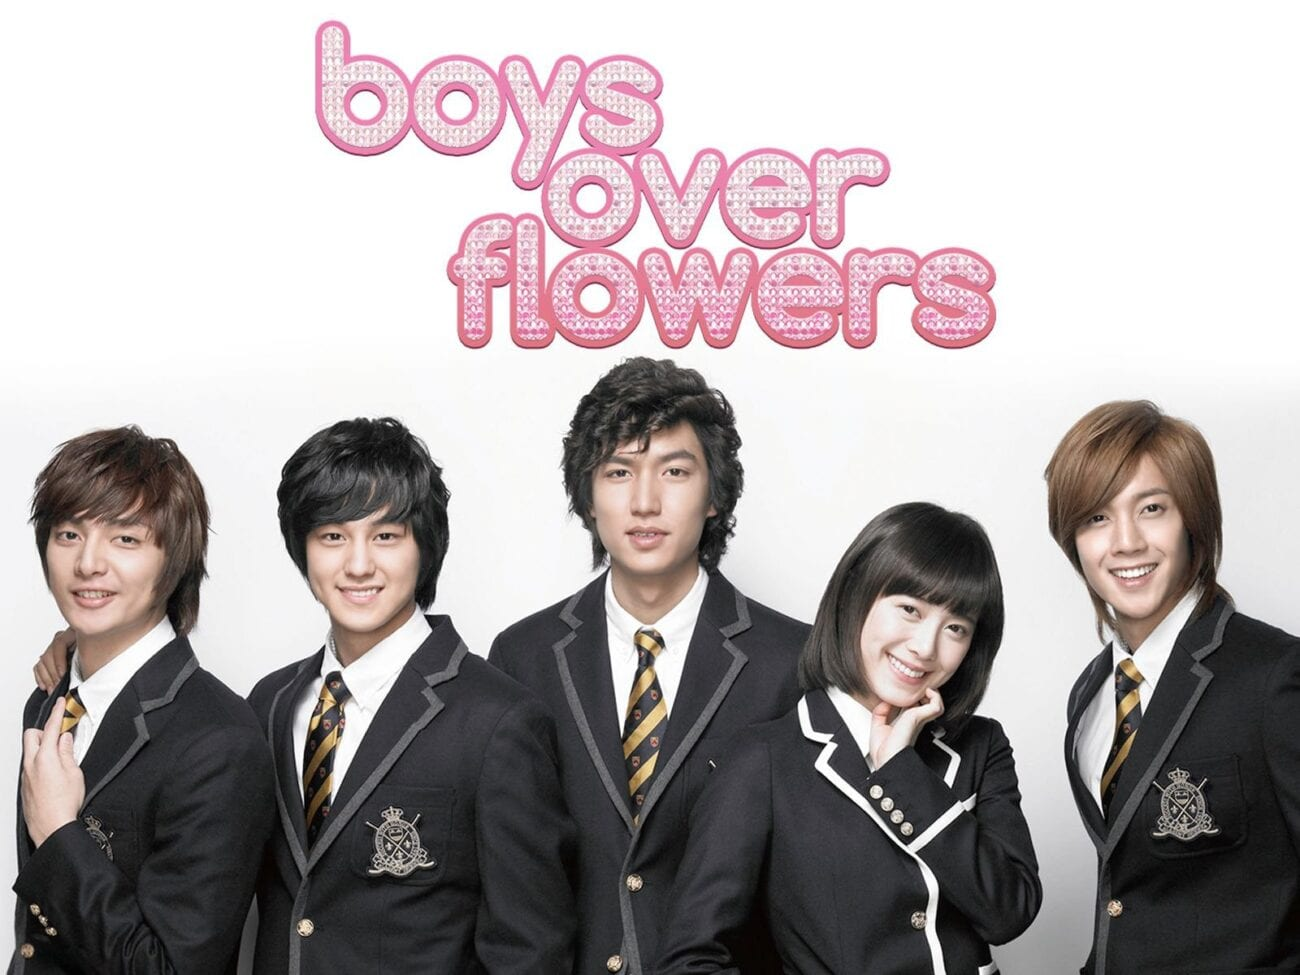 If you just can't get enough of the K-drama 'Boys Over Flowers', here are all of the adaptations you can watch to fill the void.